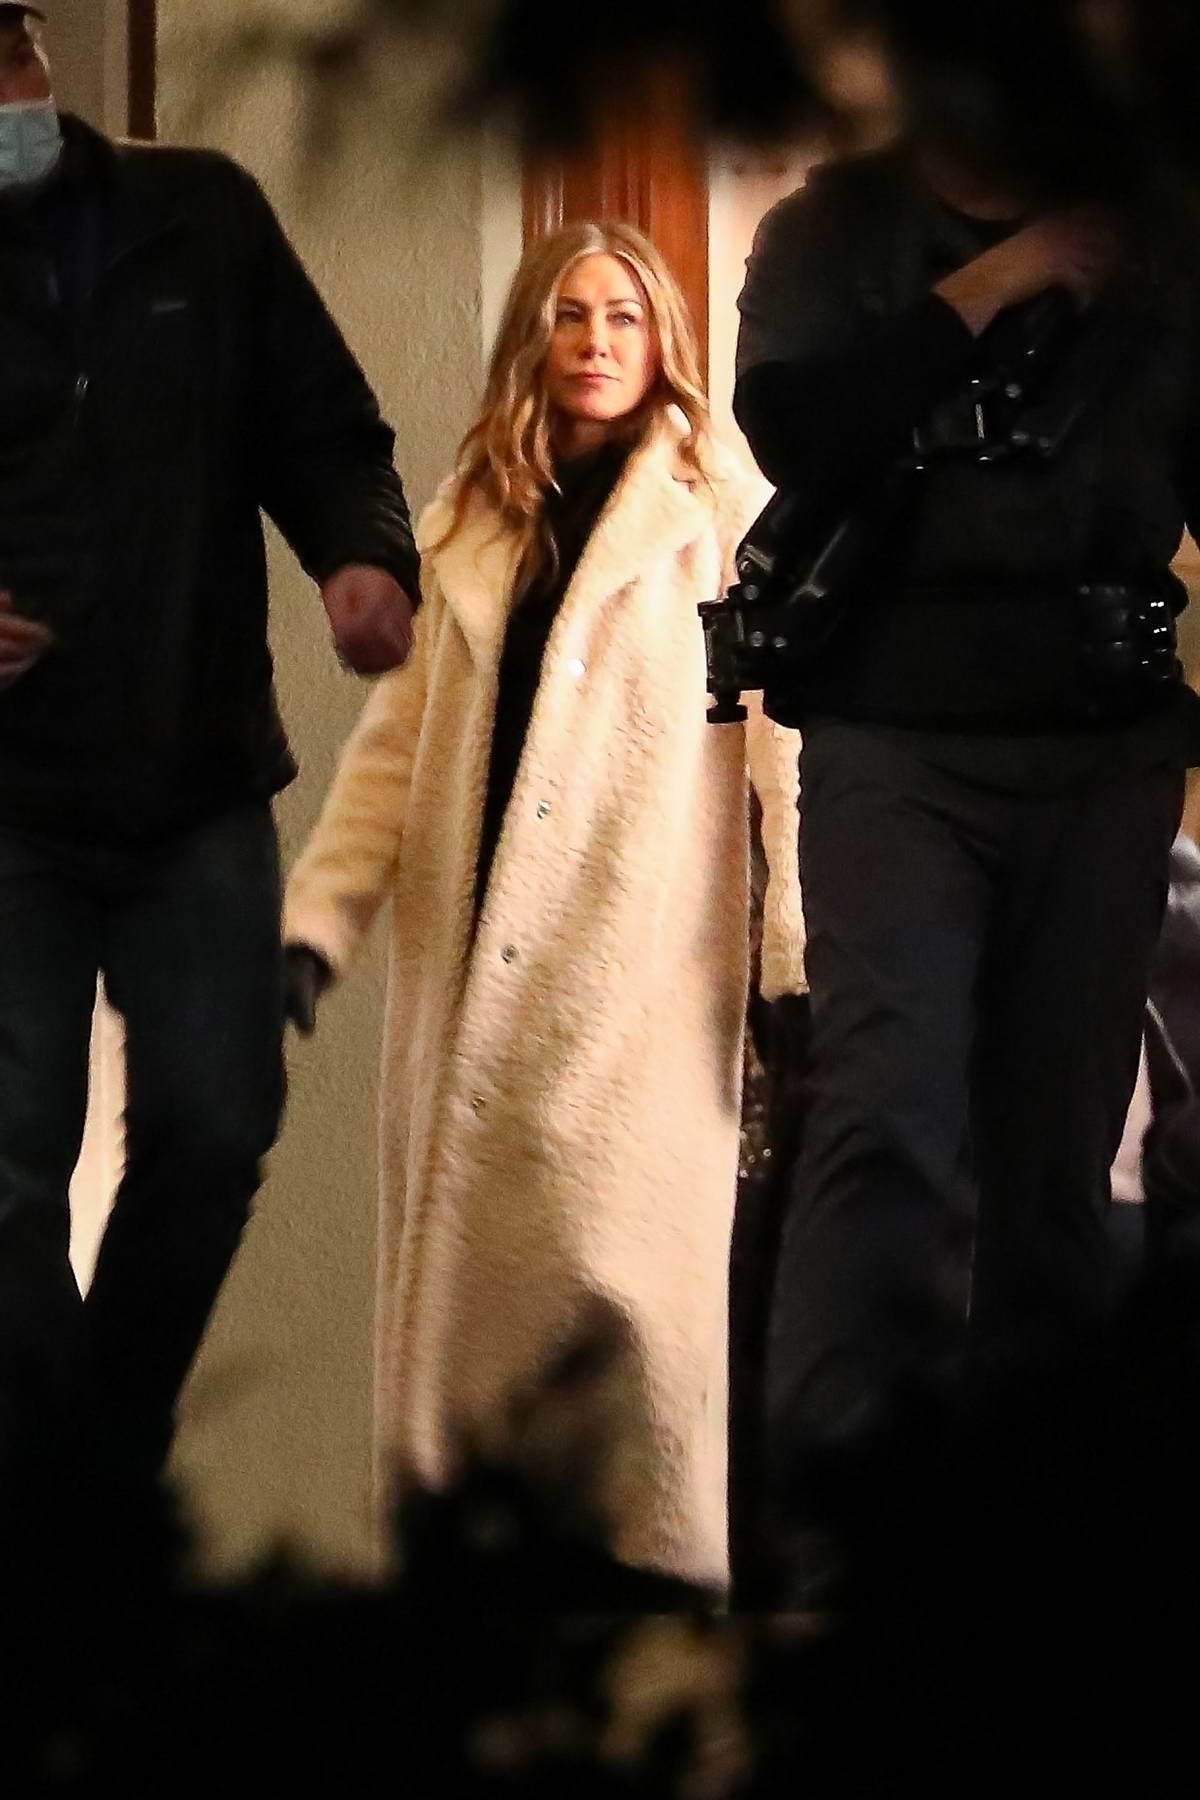 Jennifer Aniston seen filming a scene on the set of 'The Morning Show' in Los Angeles